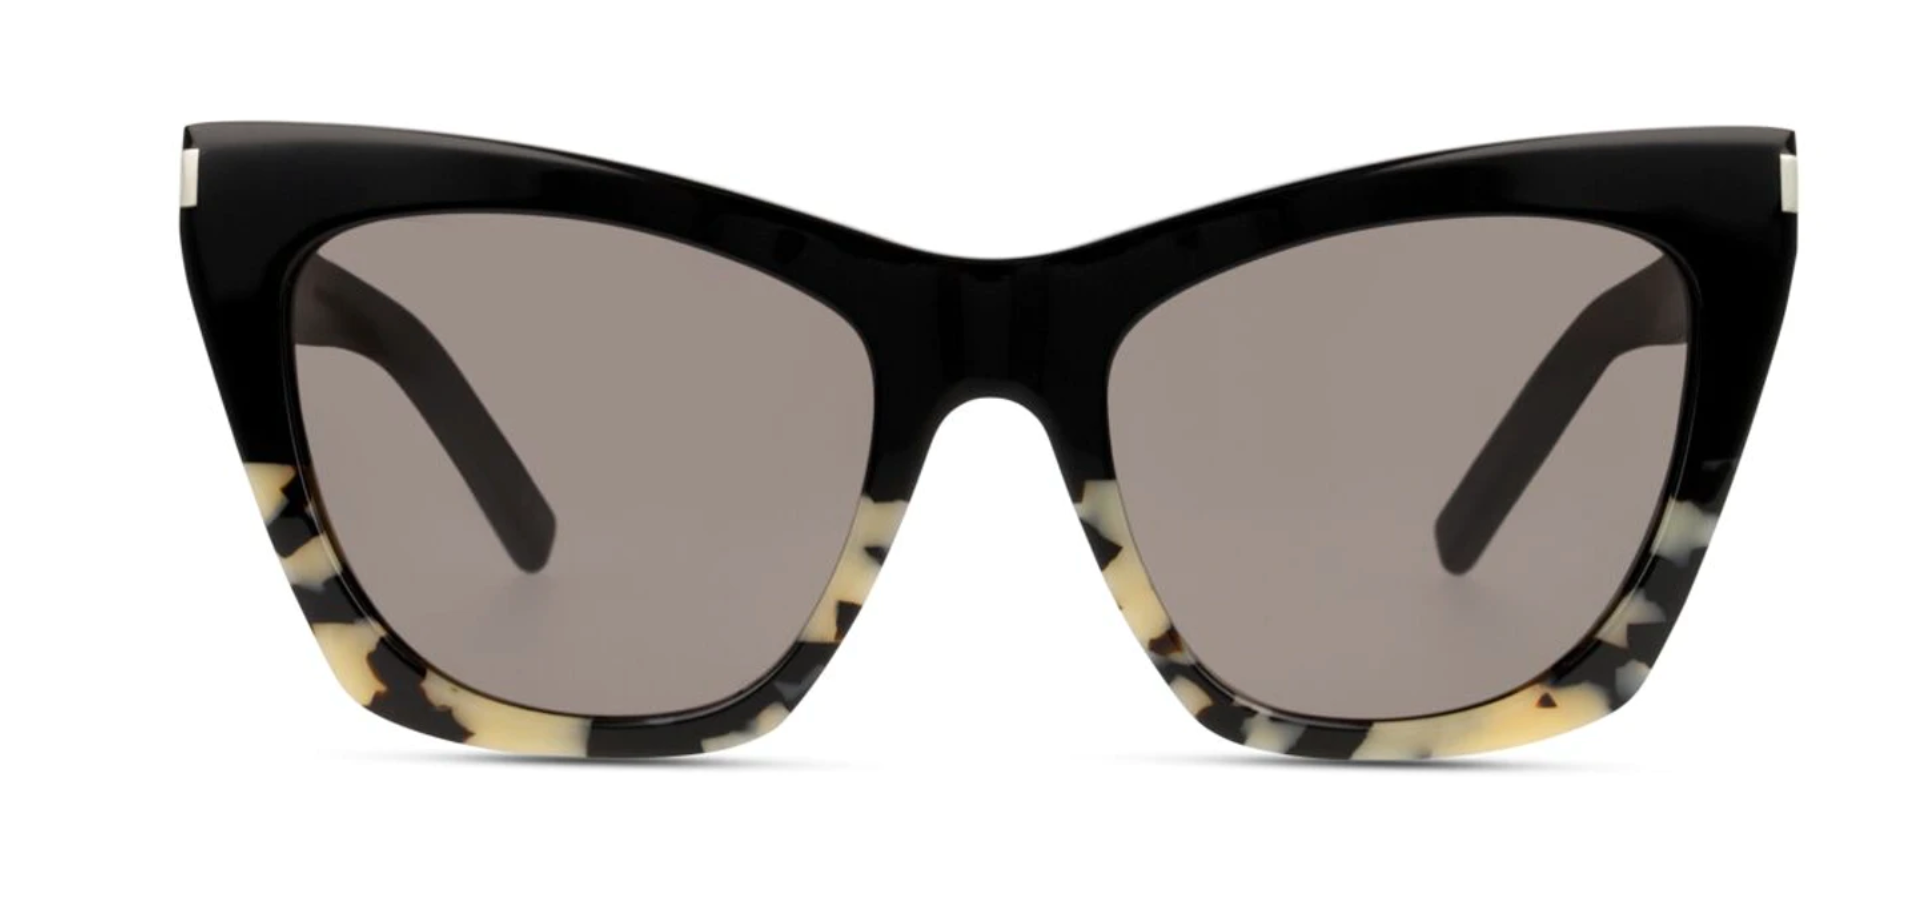 Yves Saint Laurent Kate Havana Sunglasses - Black & Cream